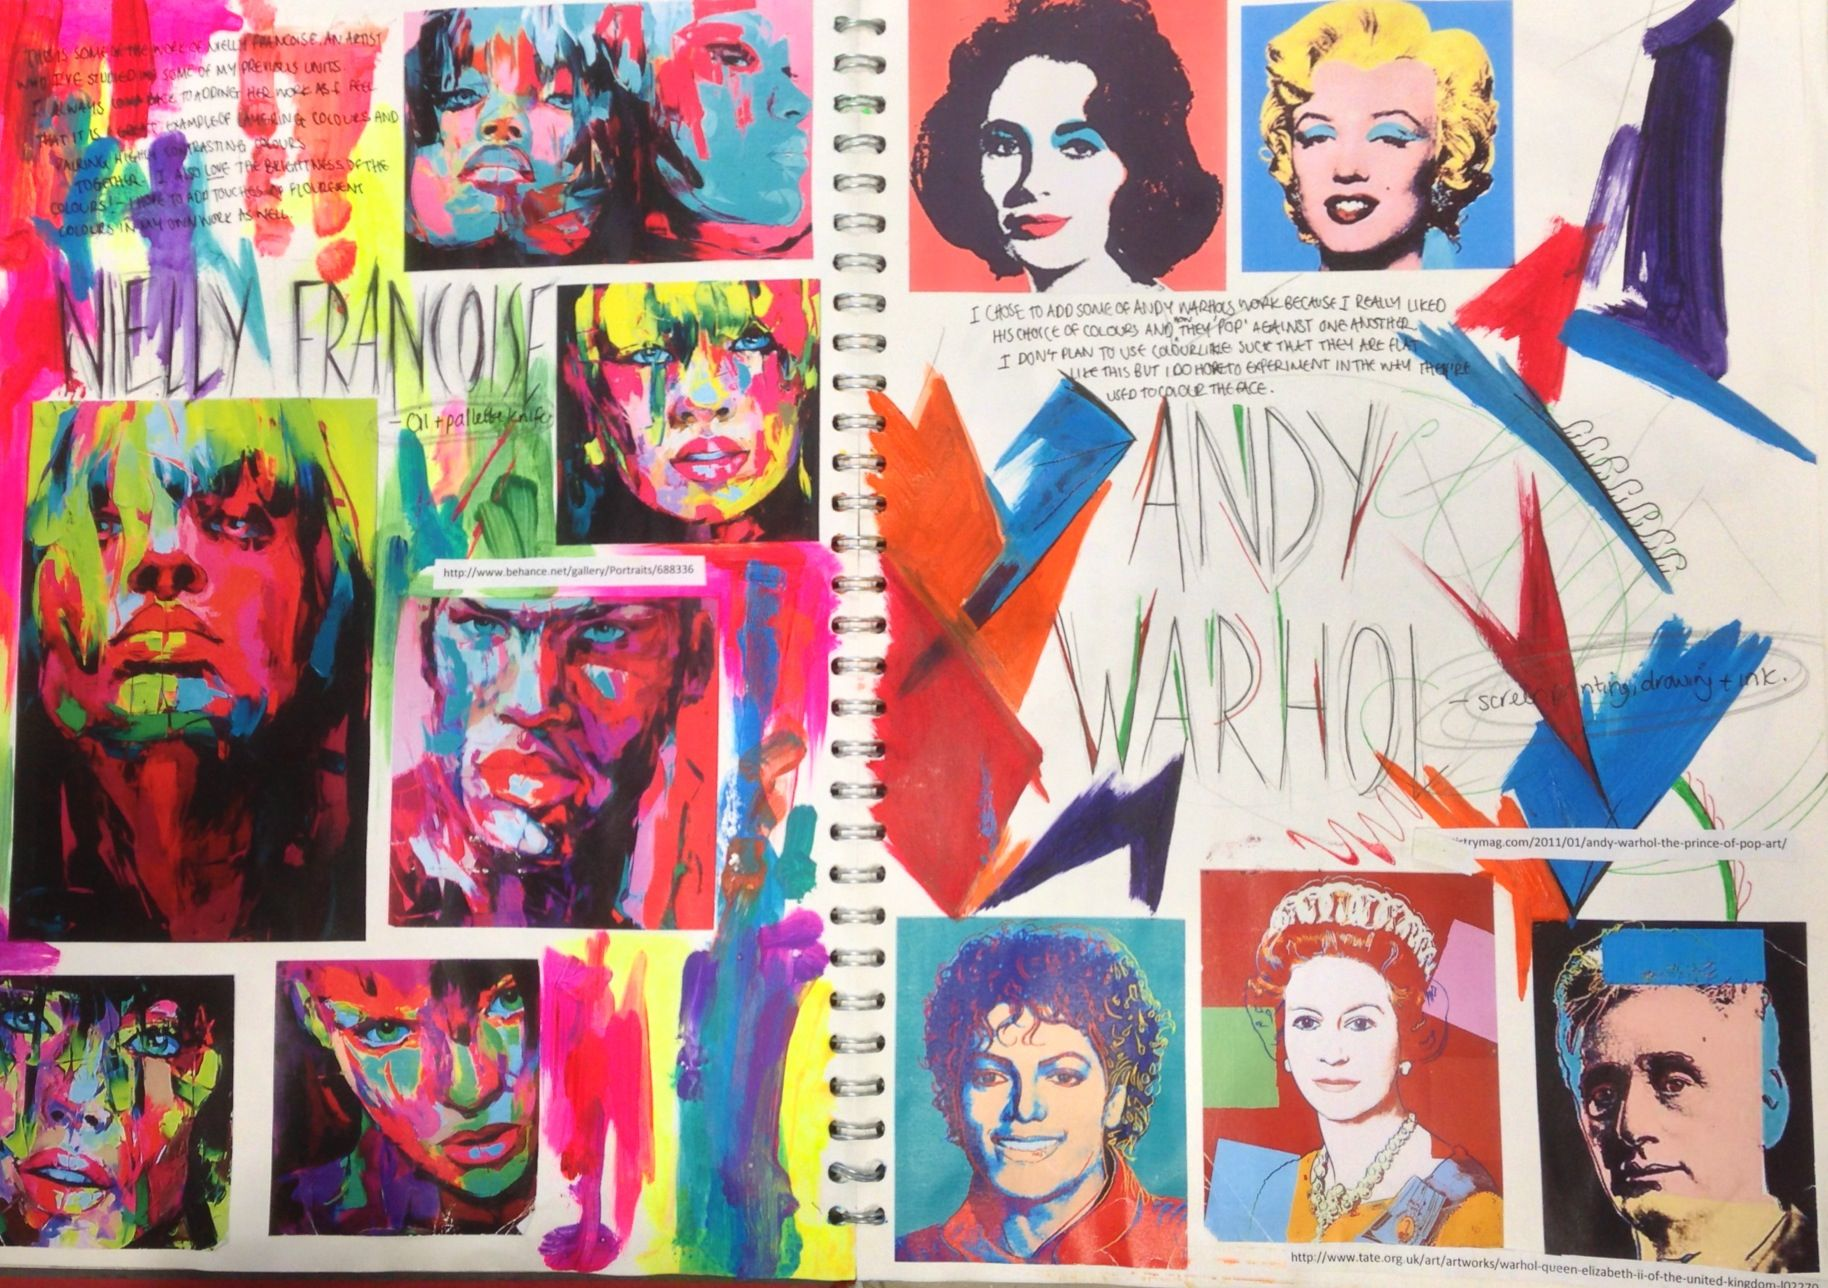 I Like The Bright Colours And Andy Warhol Style And The Fact That They Ve Created They Re Own Pop Art Images As Well Pop Art Pop Art Design Gcse Art Sketchbook